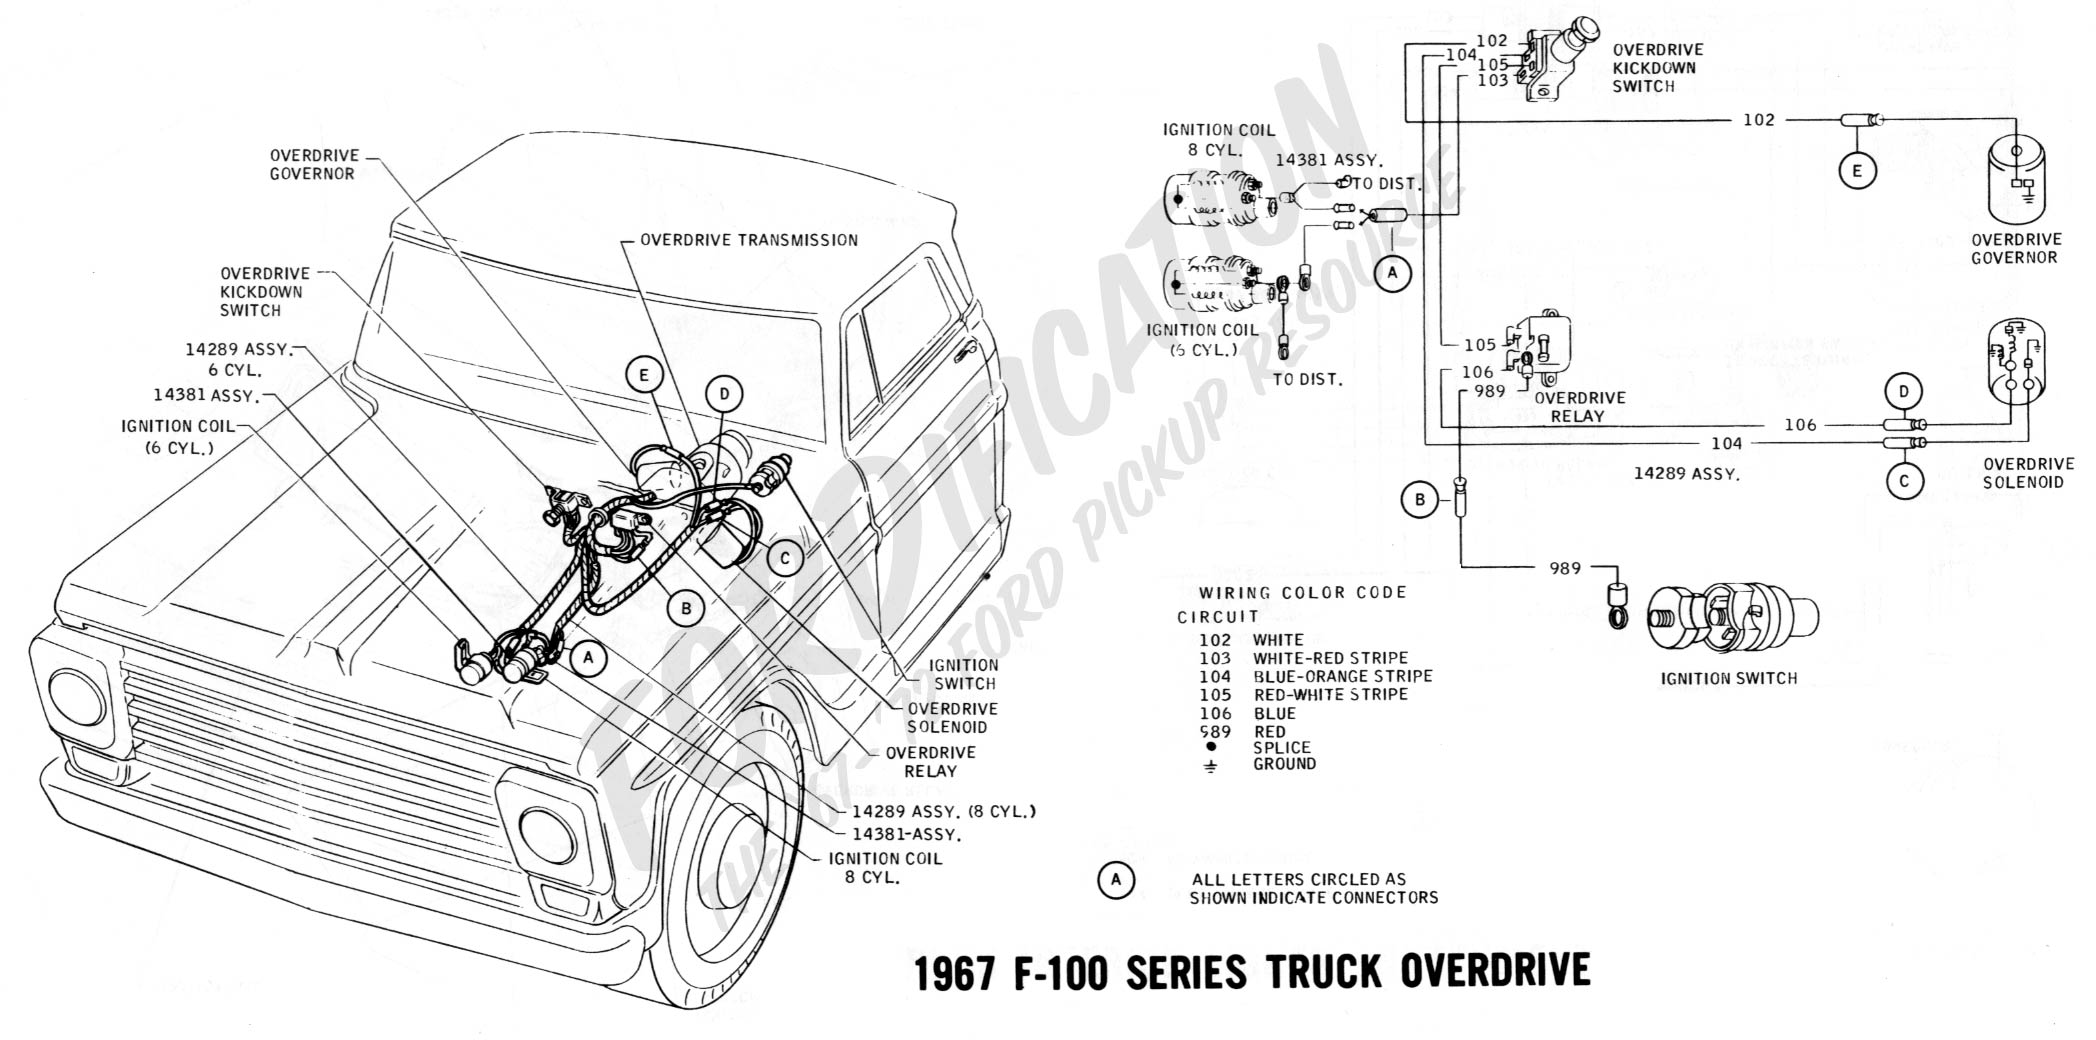 1968 f100 wiring diagram wiring diagram schemes 1970 ford steering column wiring  diagram ford steering column